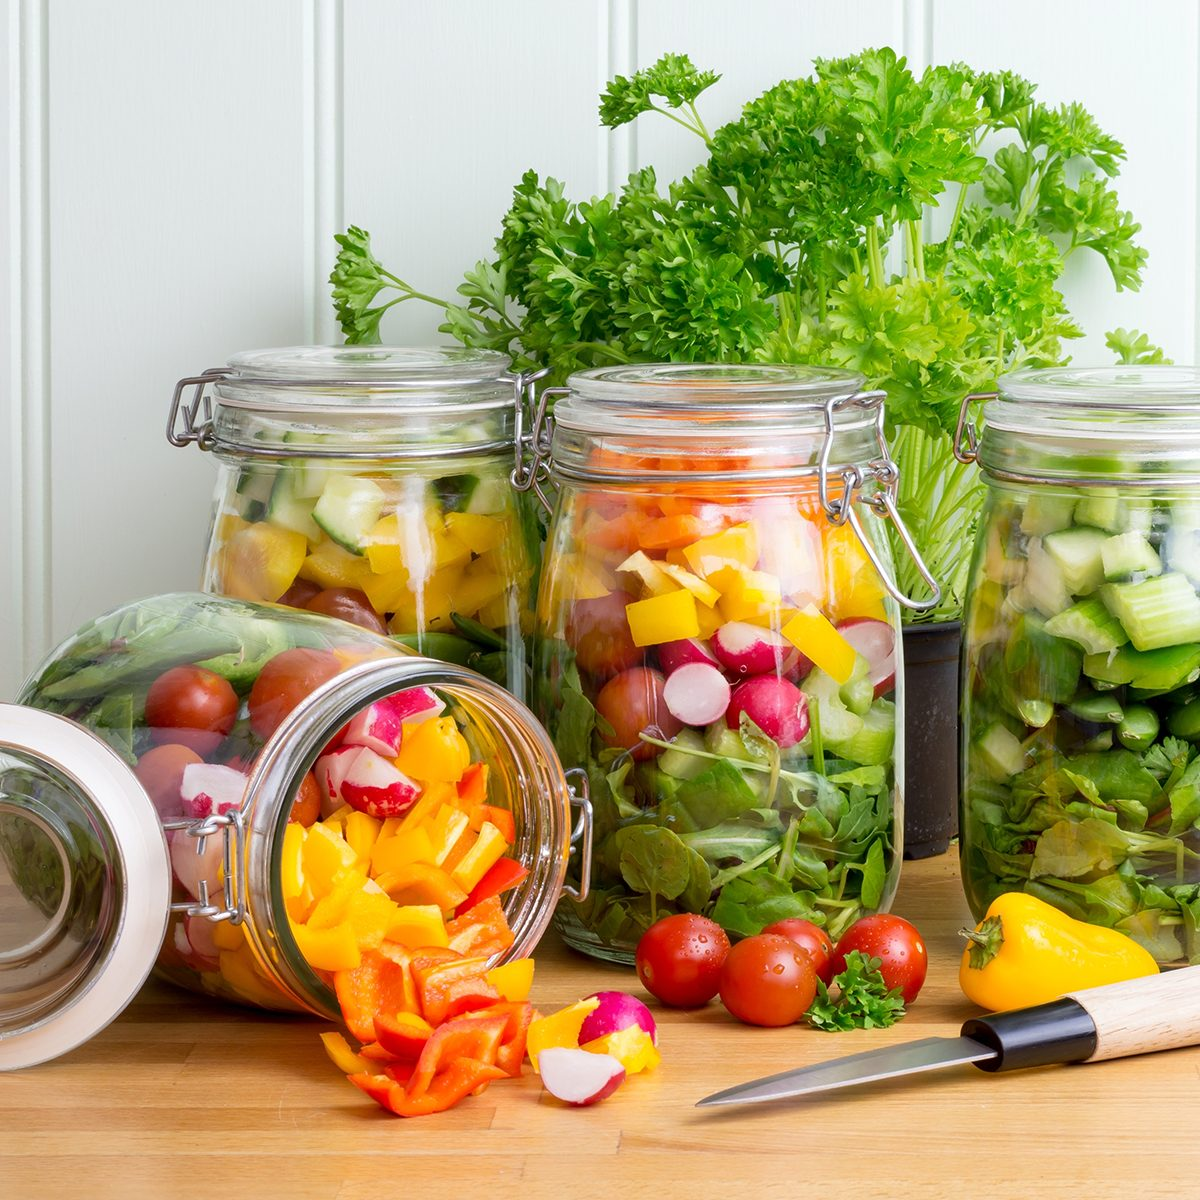 Prepared salad in glass storage jars. One jar tipped on side spilling contents. Meal prep.